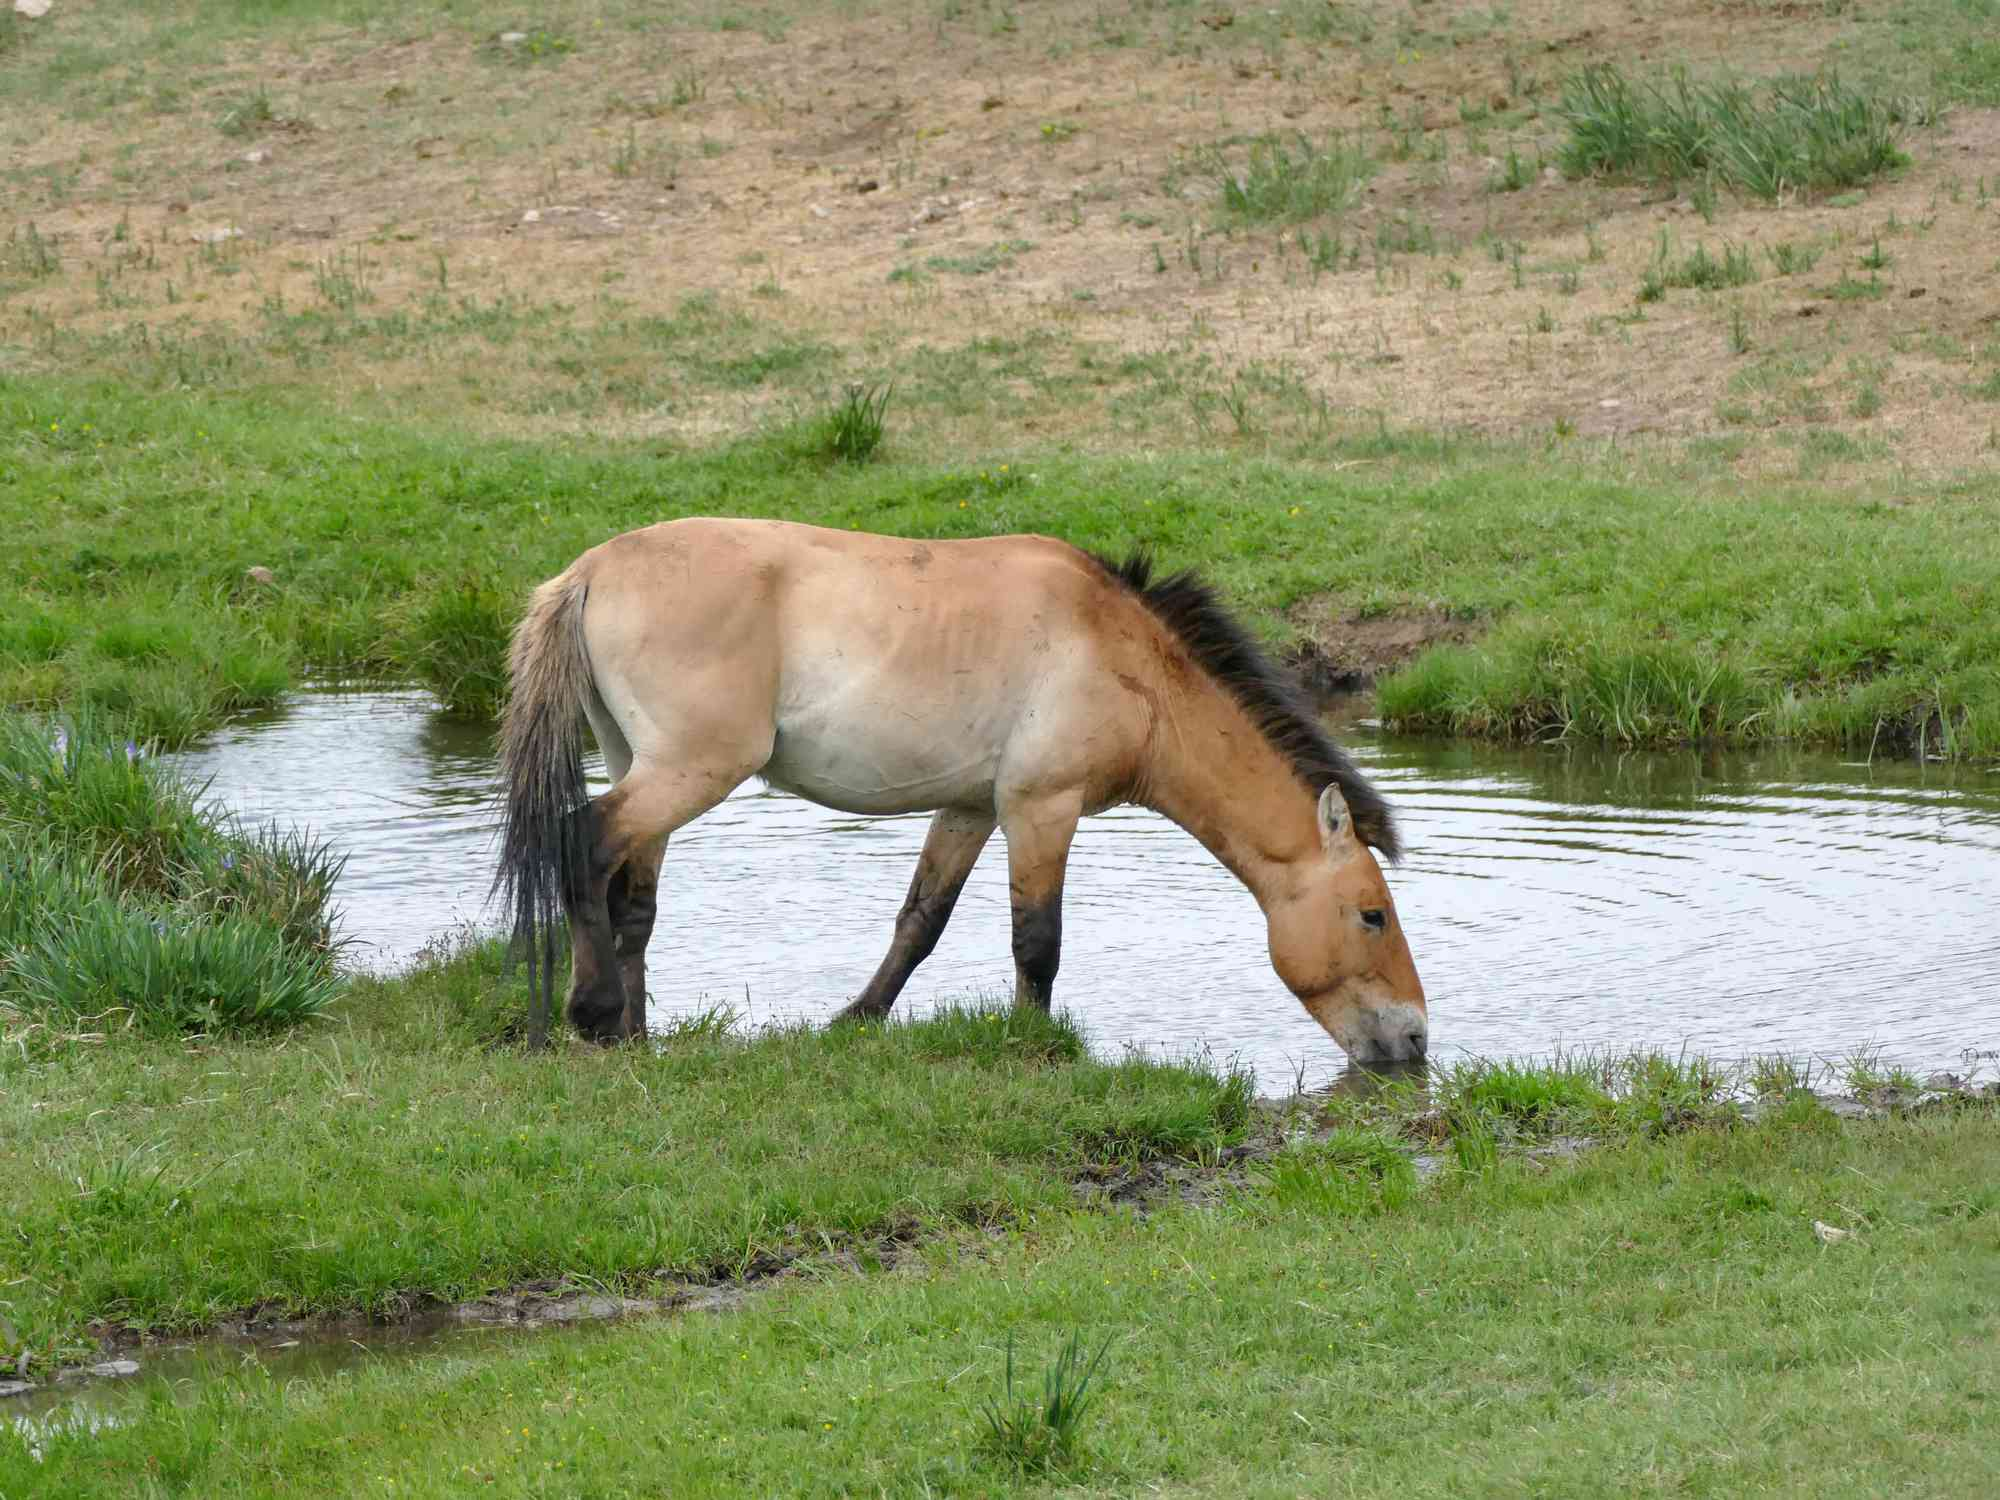 light tan Przewalski's horse bends down to drink water surrounded by green grass